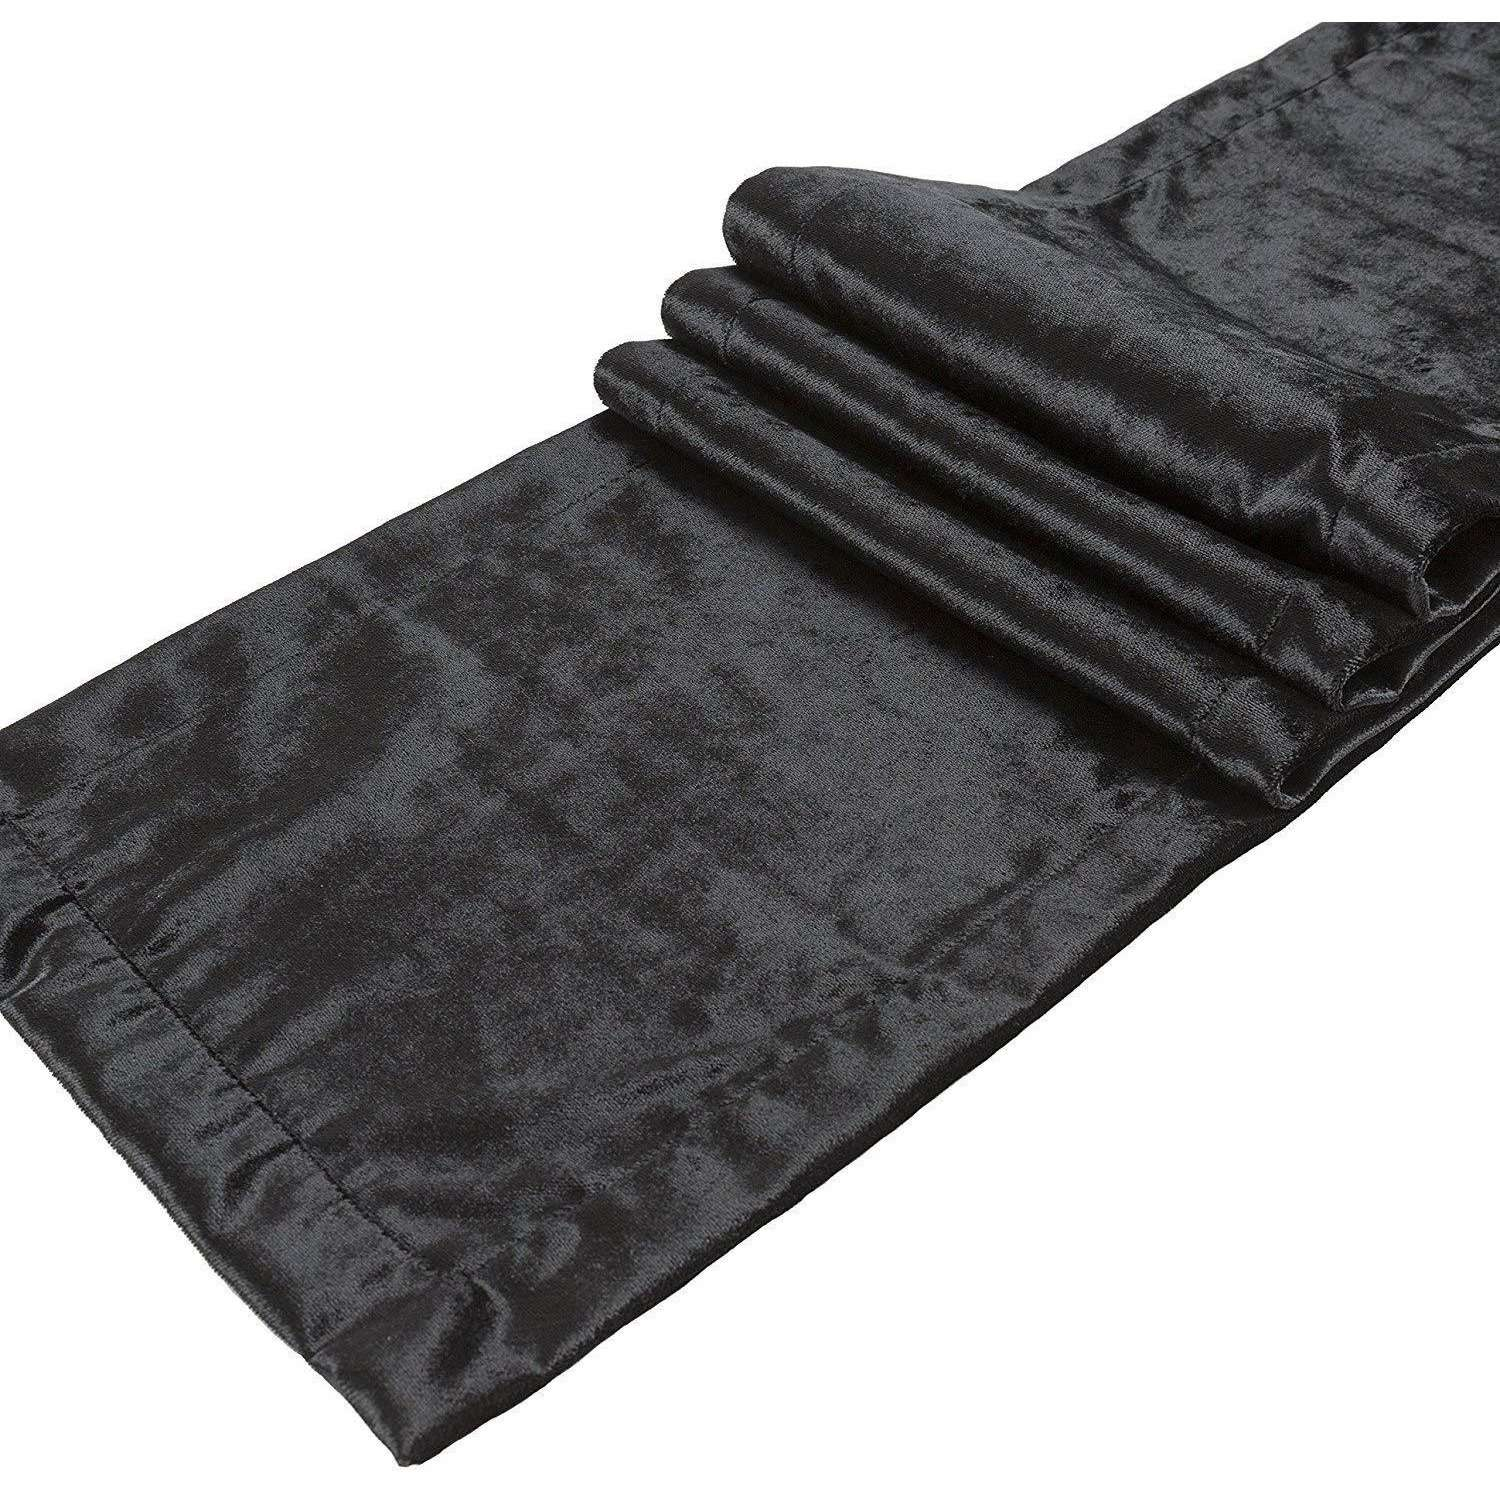 McAlister Textiles Black Crushed Velvet Throws & Runners Throws and Runners Bed Runner (50cm x 240cm)